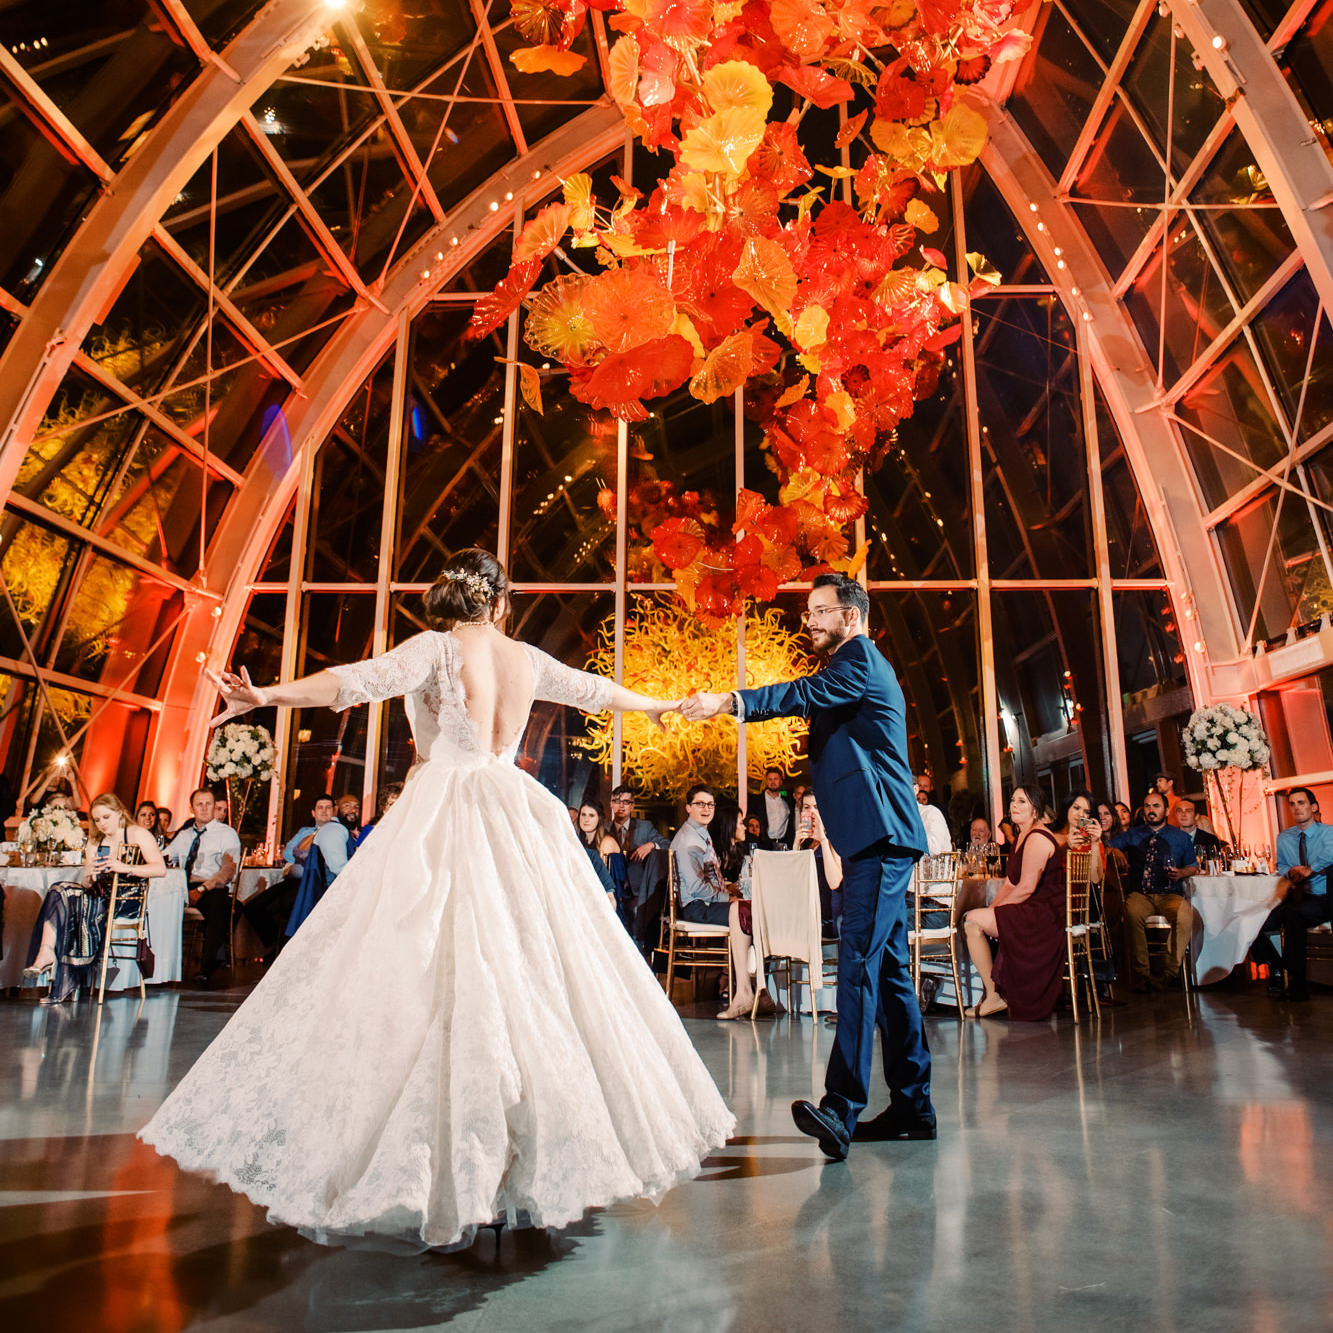 Don't miss out on amazing deals on glass wall lighting. A Wedding At Chihuly Garden Glass Lauren And Kyle